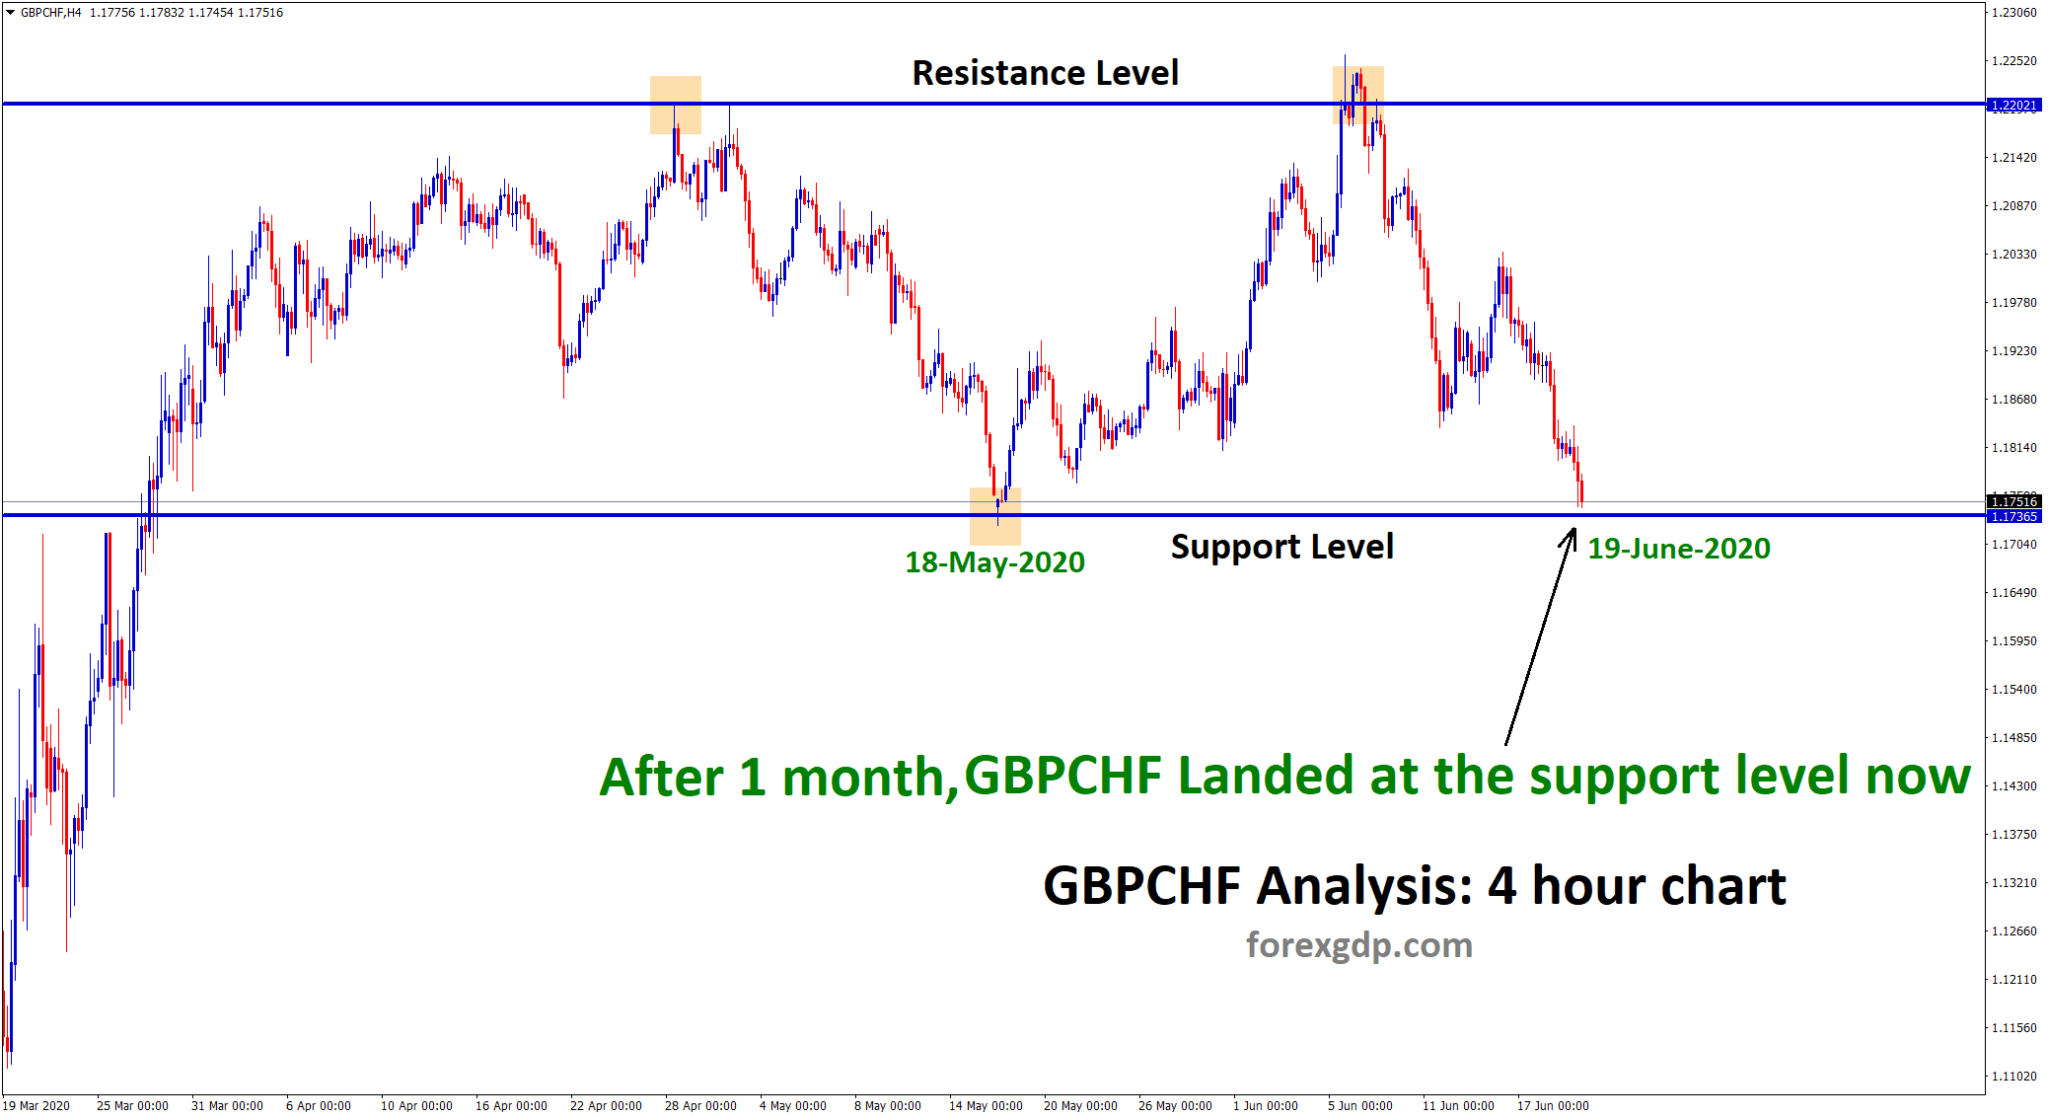 gbpchf landed at the support level now